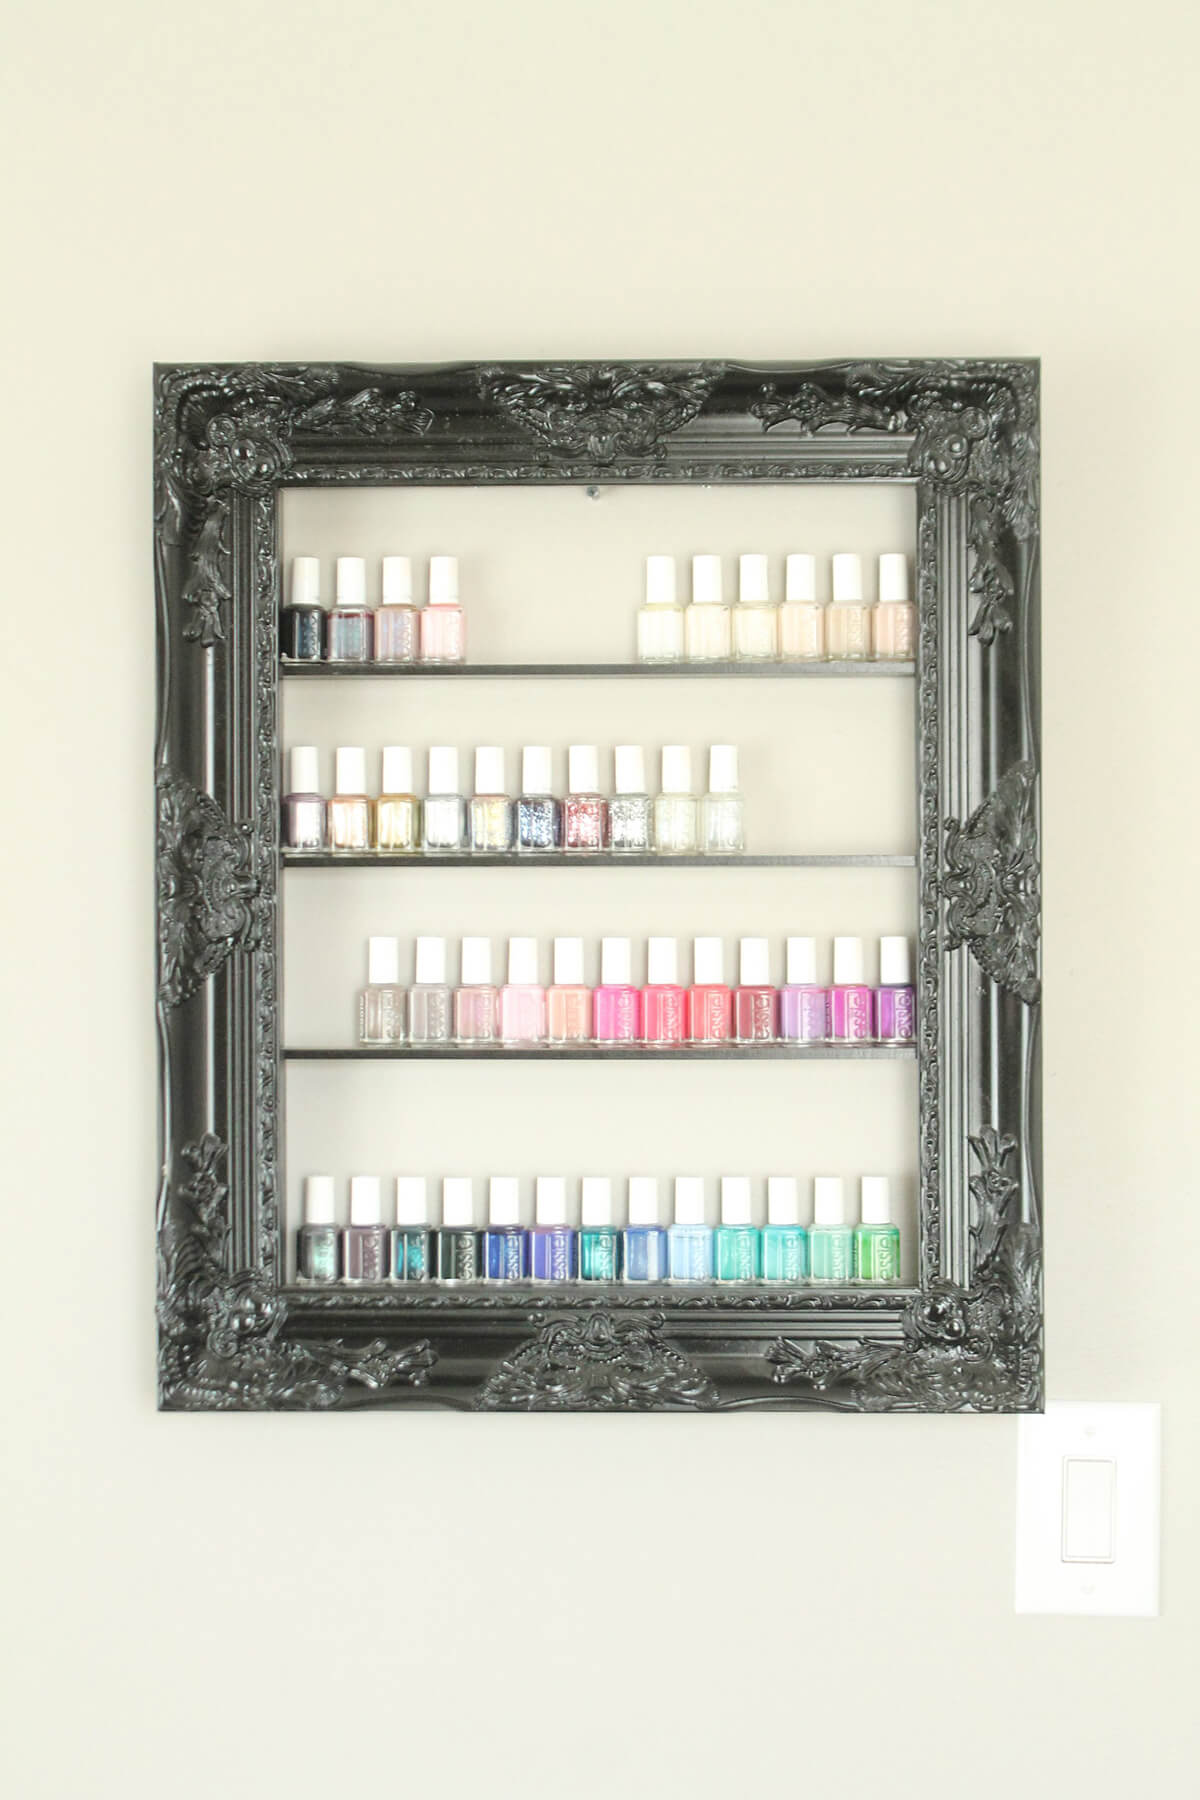 Colorful Nail Polish in an Elegant Frame